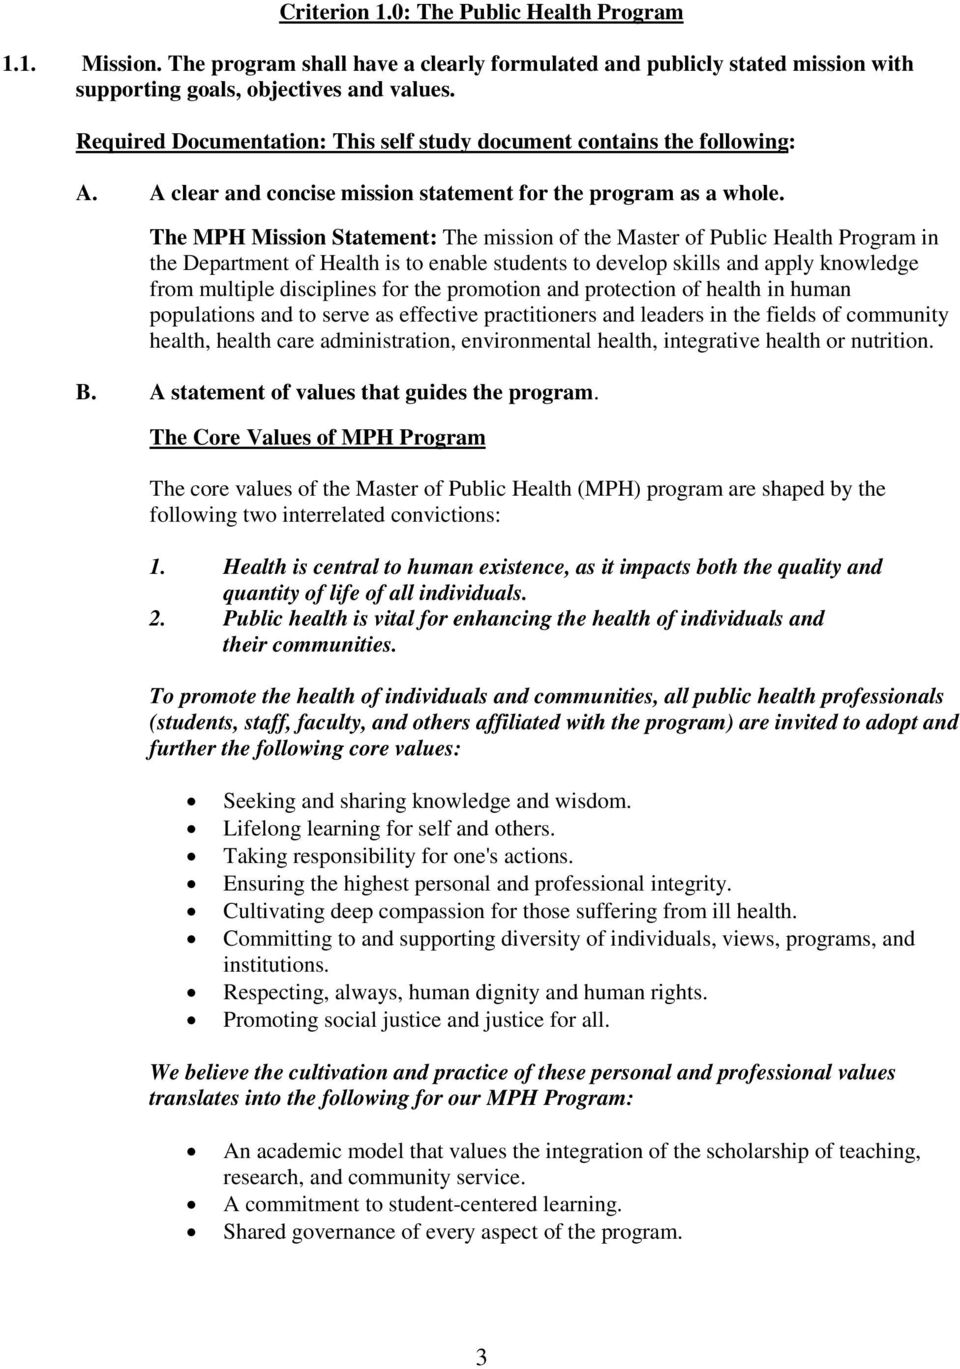 The MPH Mission Statement: The mission of the Master of Public Health Program in the Department of Health is to enable students to develop skills and apply knowledge from multiple disciplines for the